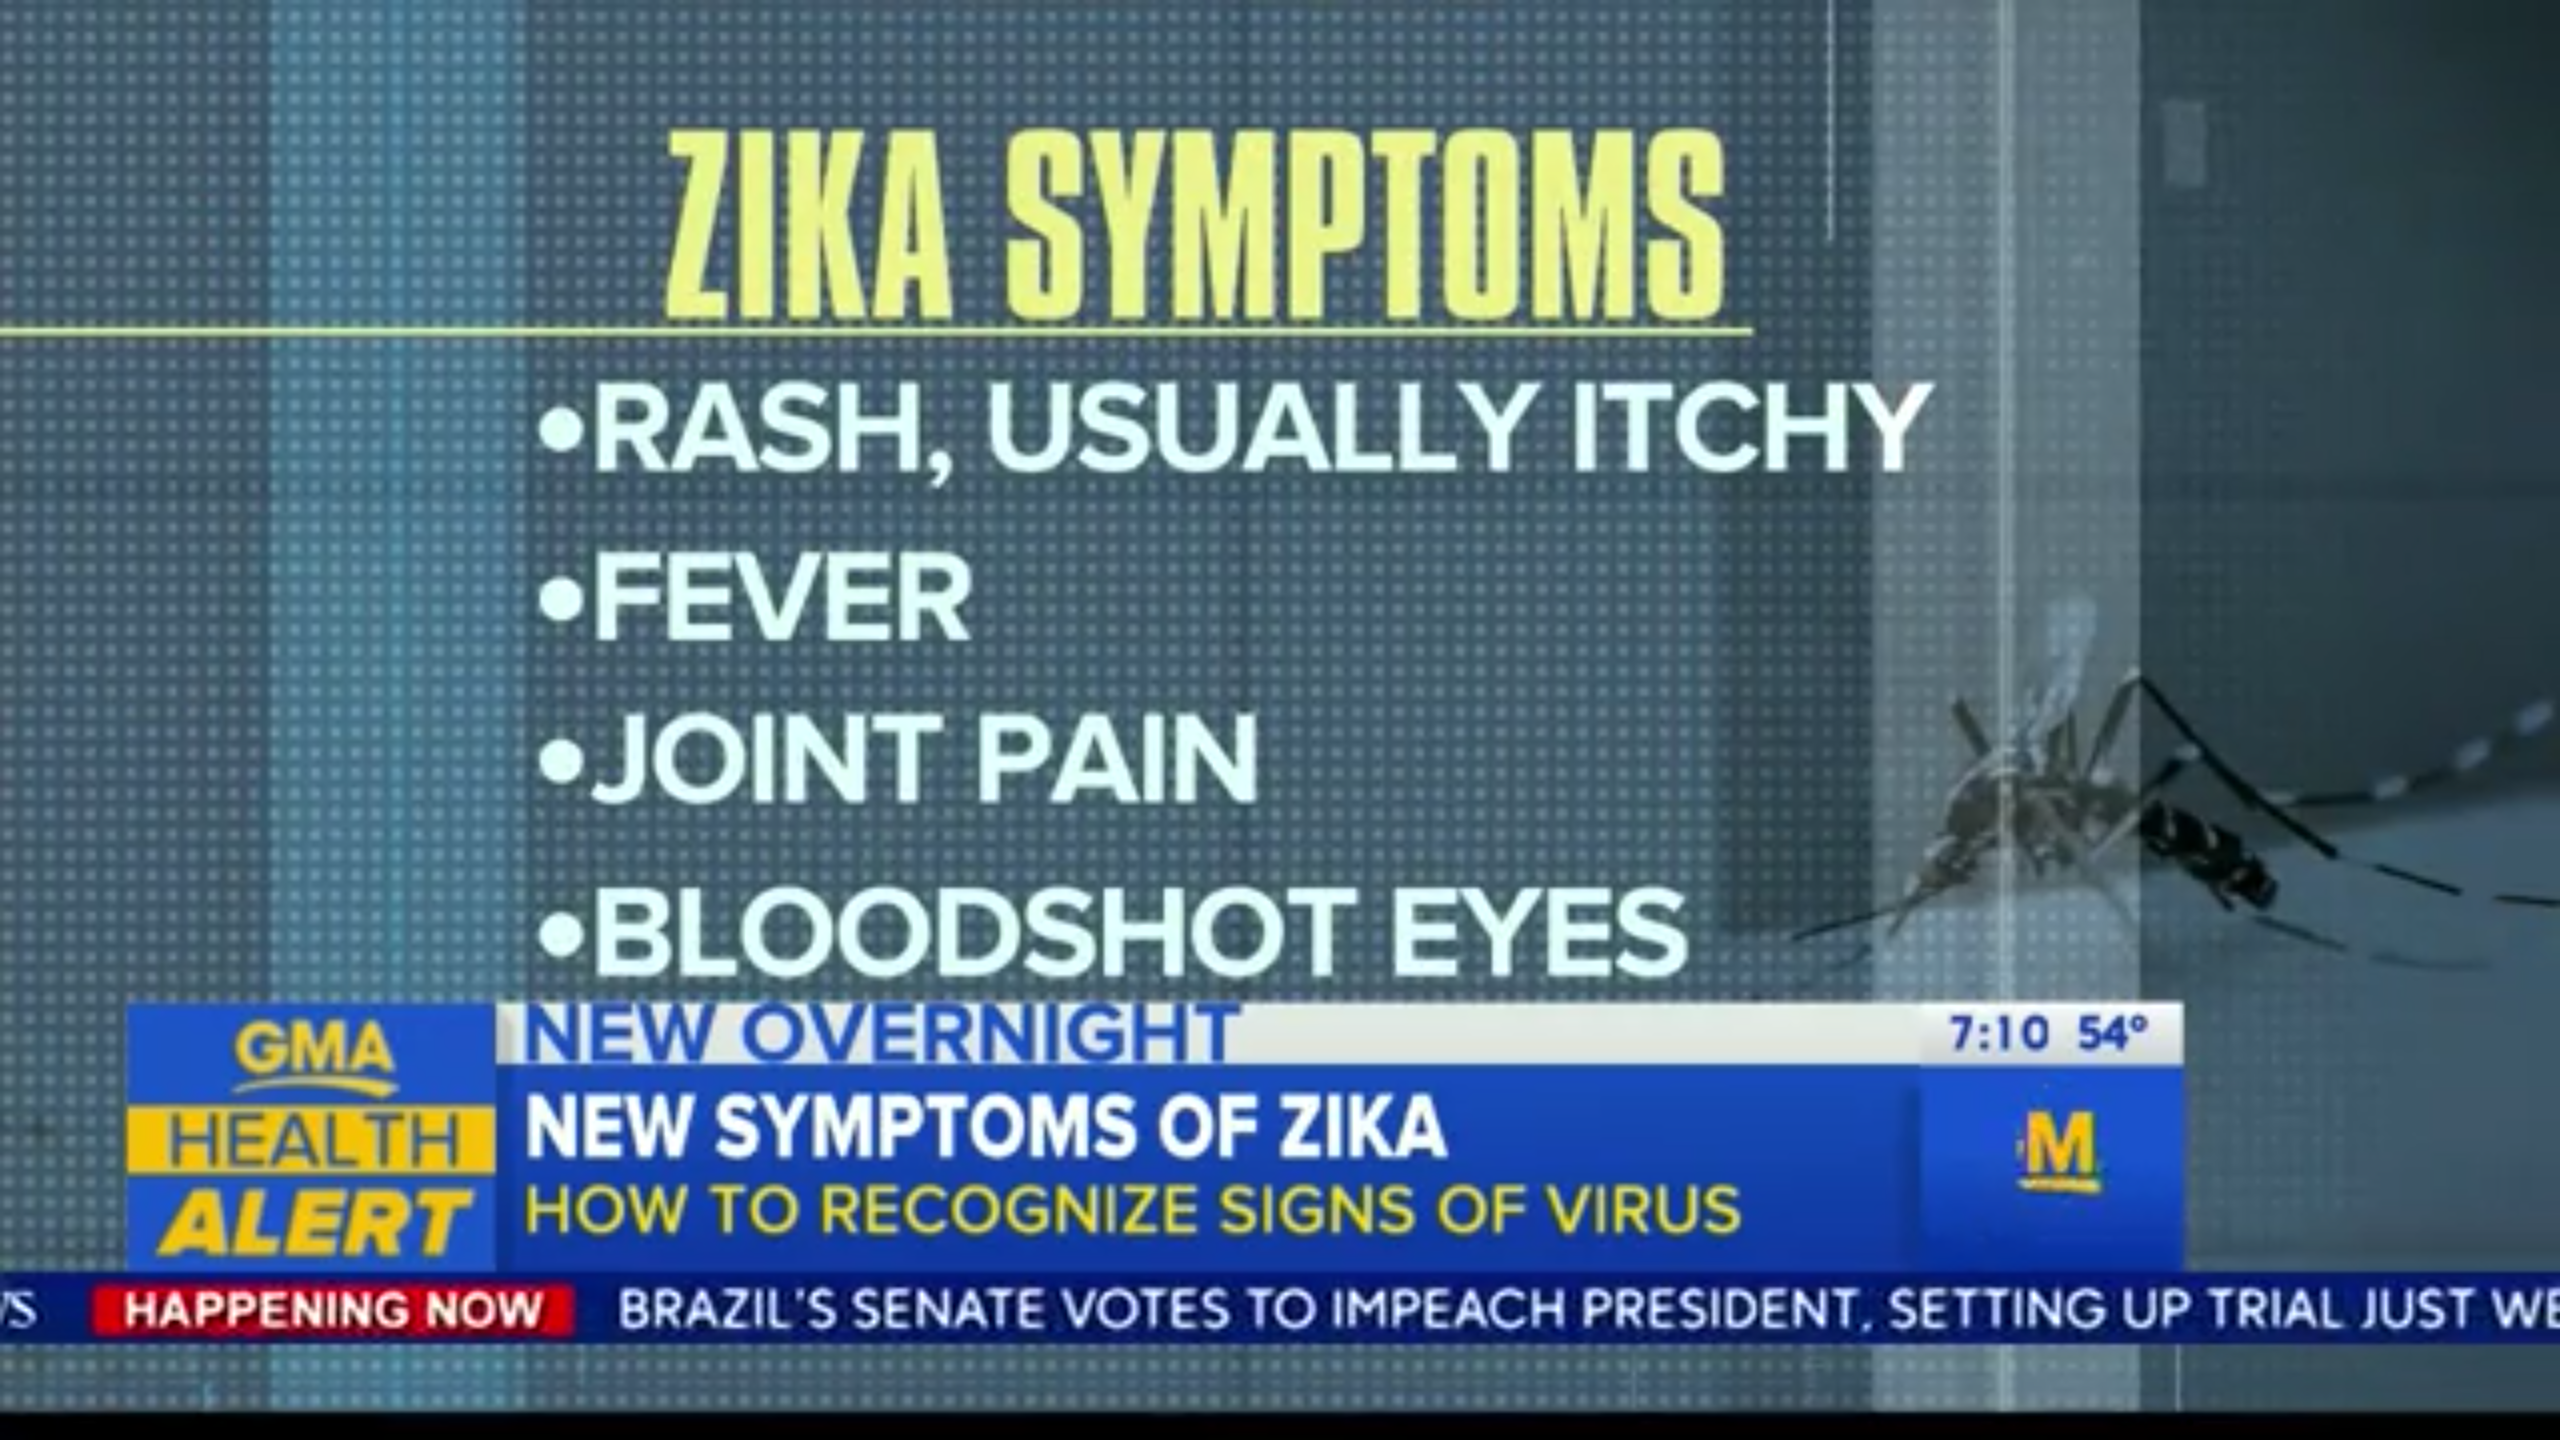 ABC Good Morning America, May 12, 2016 Text on the screen to reinforce consequential Zika information as the reporter is saying it.